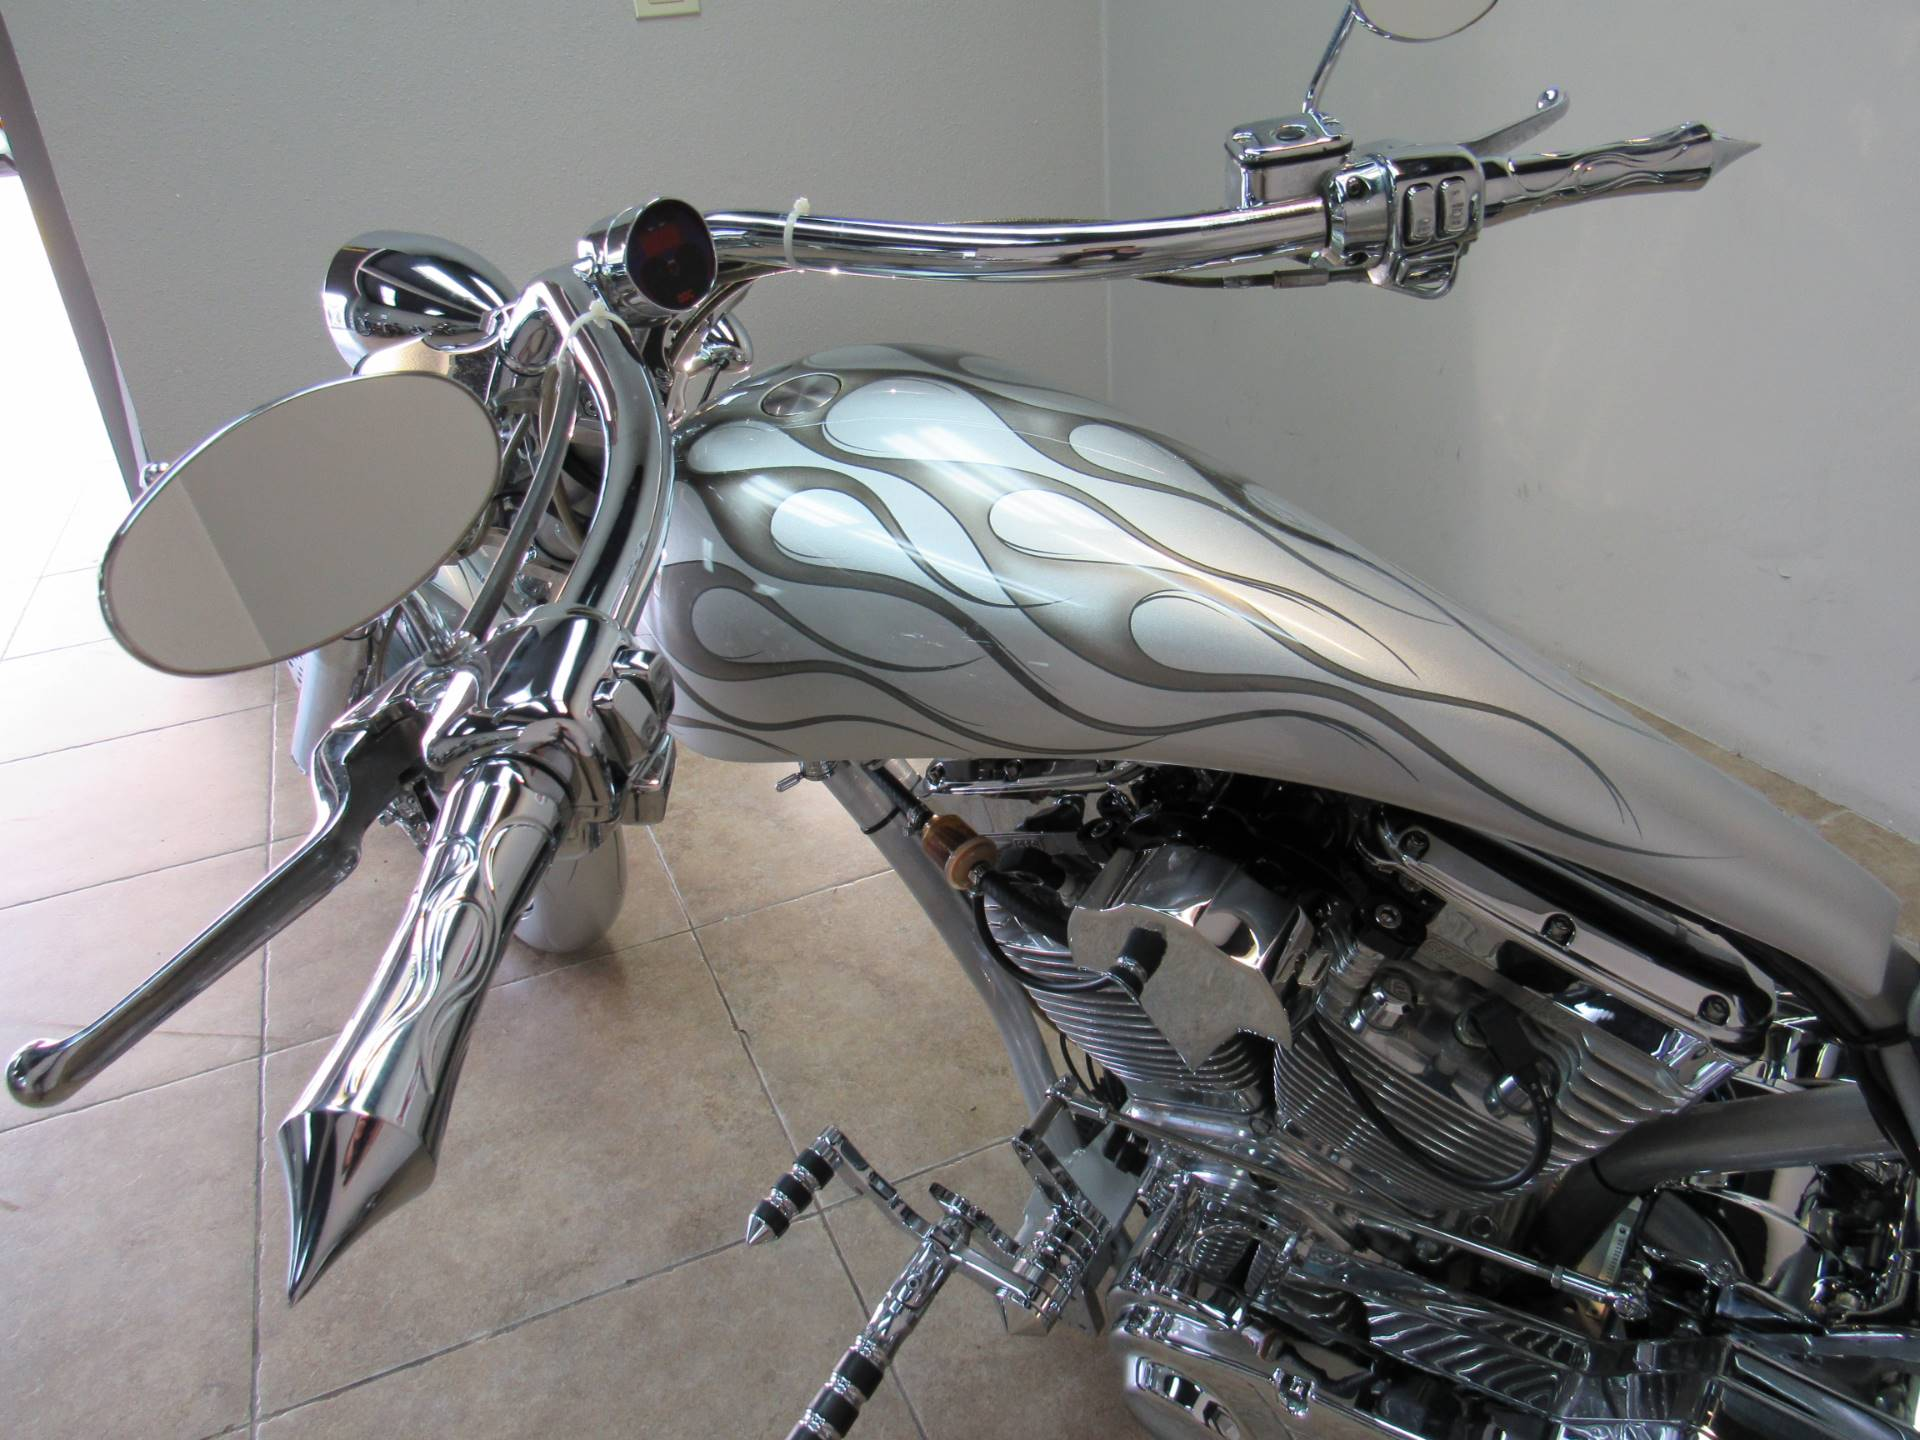 2006 Big Bear Choppers Sled Prostreet (CA) - [SLEDPROSTREET] - Silver in Temecula, California - Photo 25